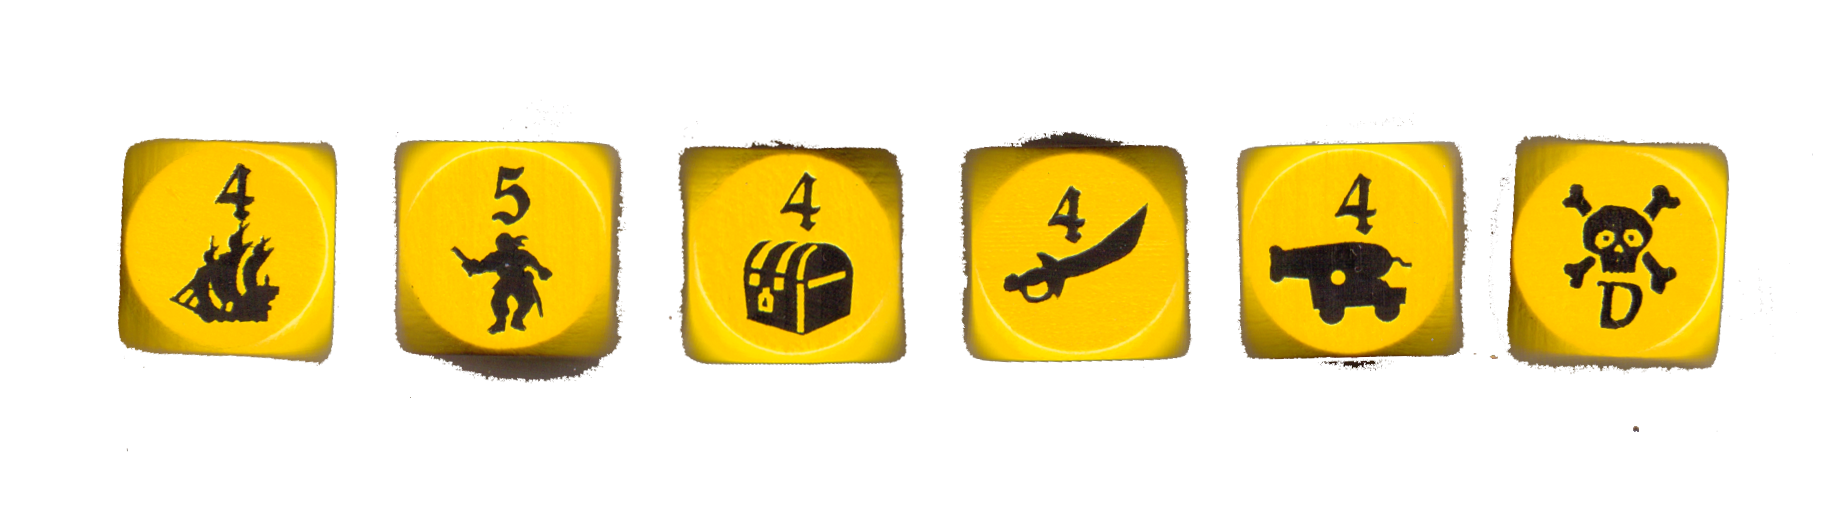 Dice, from left to right: Sailing, Recruiting, Searching, Raiding, Sea Battle and Wild